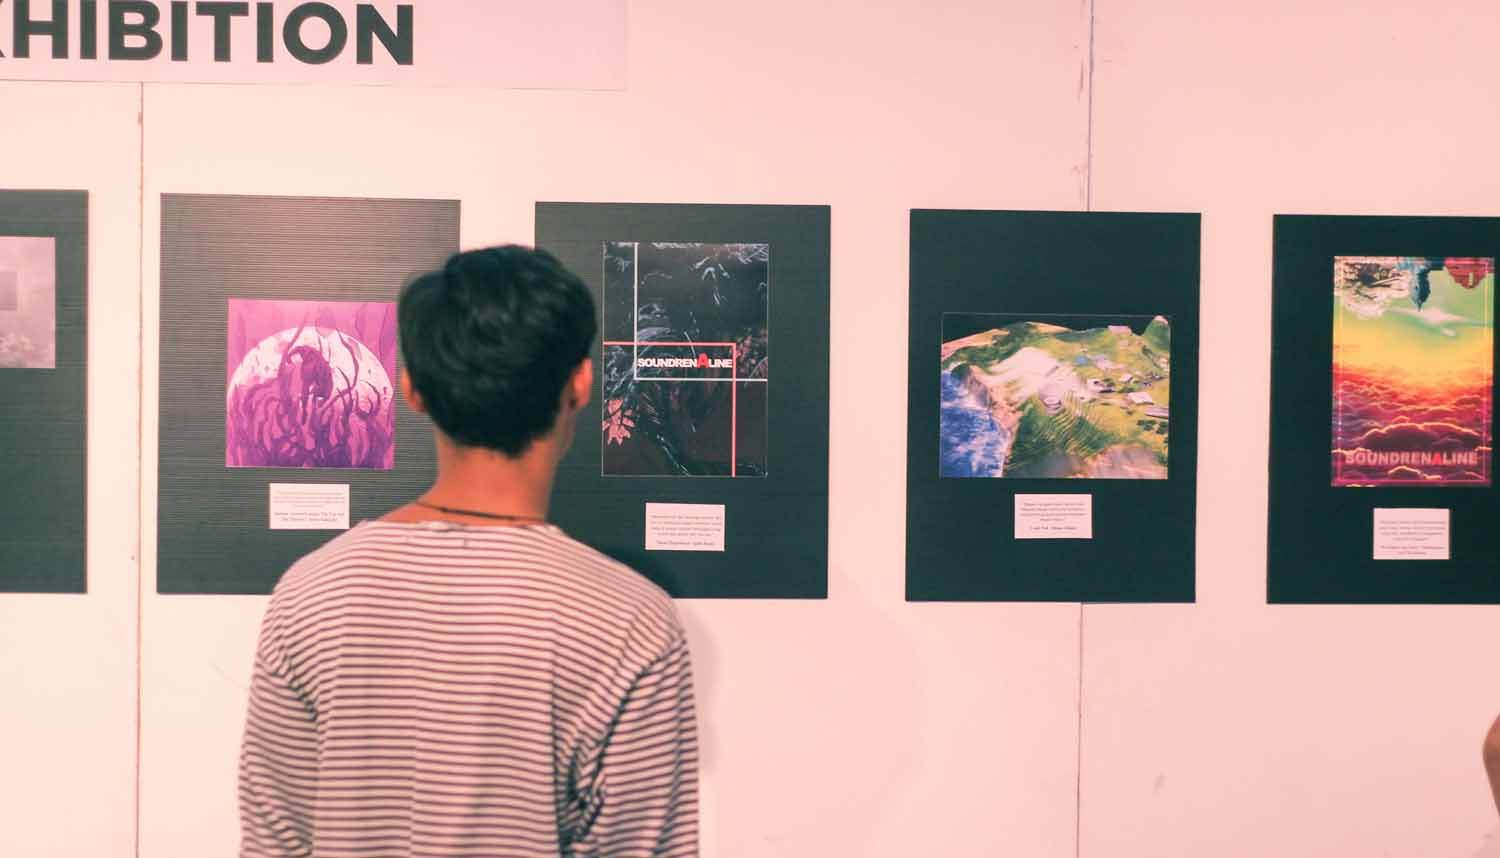 Pameran seni pada Alienation 3. Dok/ Project Vade.